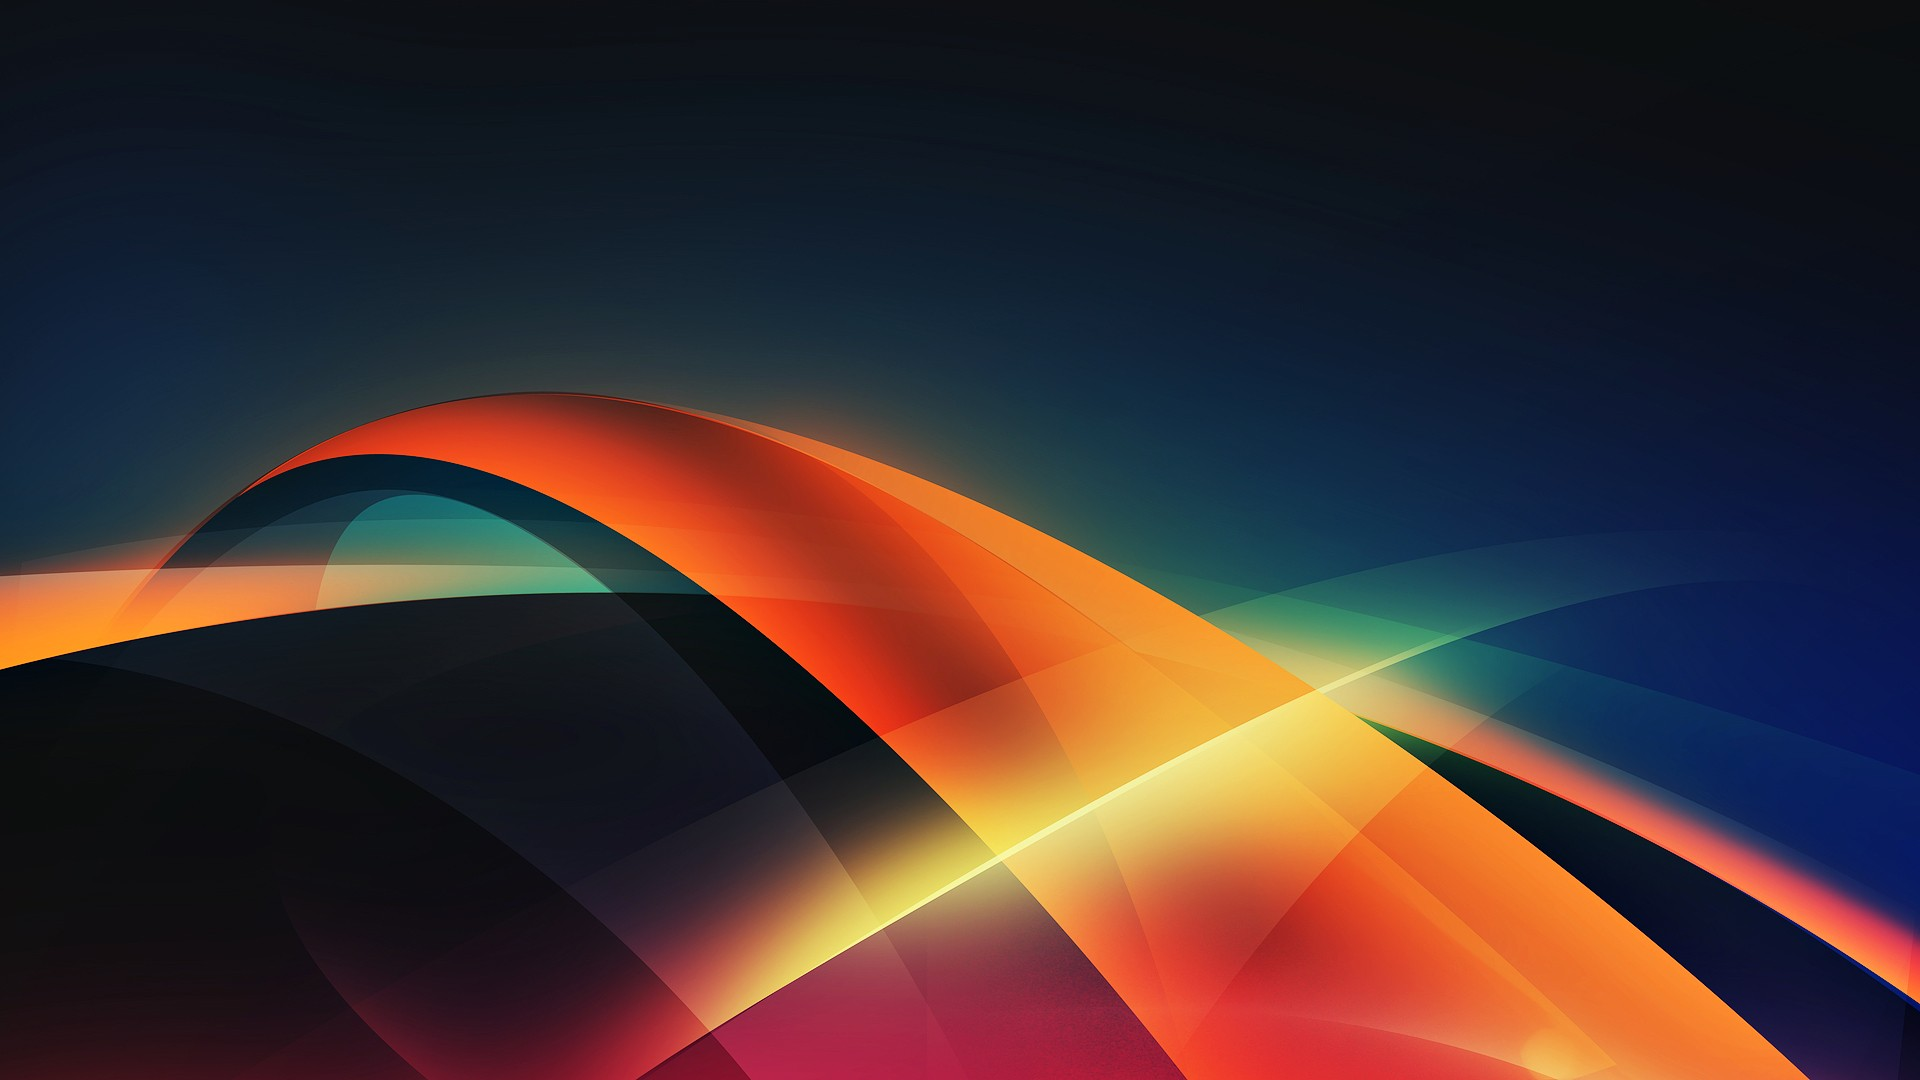 1920x1080 Abstract Shapes and Colors desktop PC and Mac